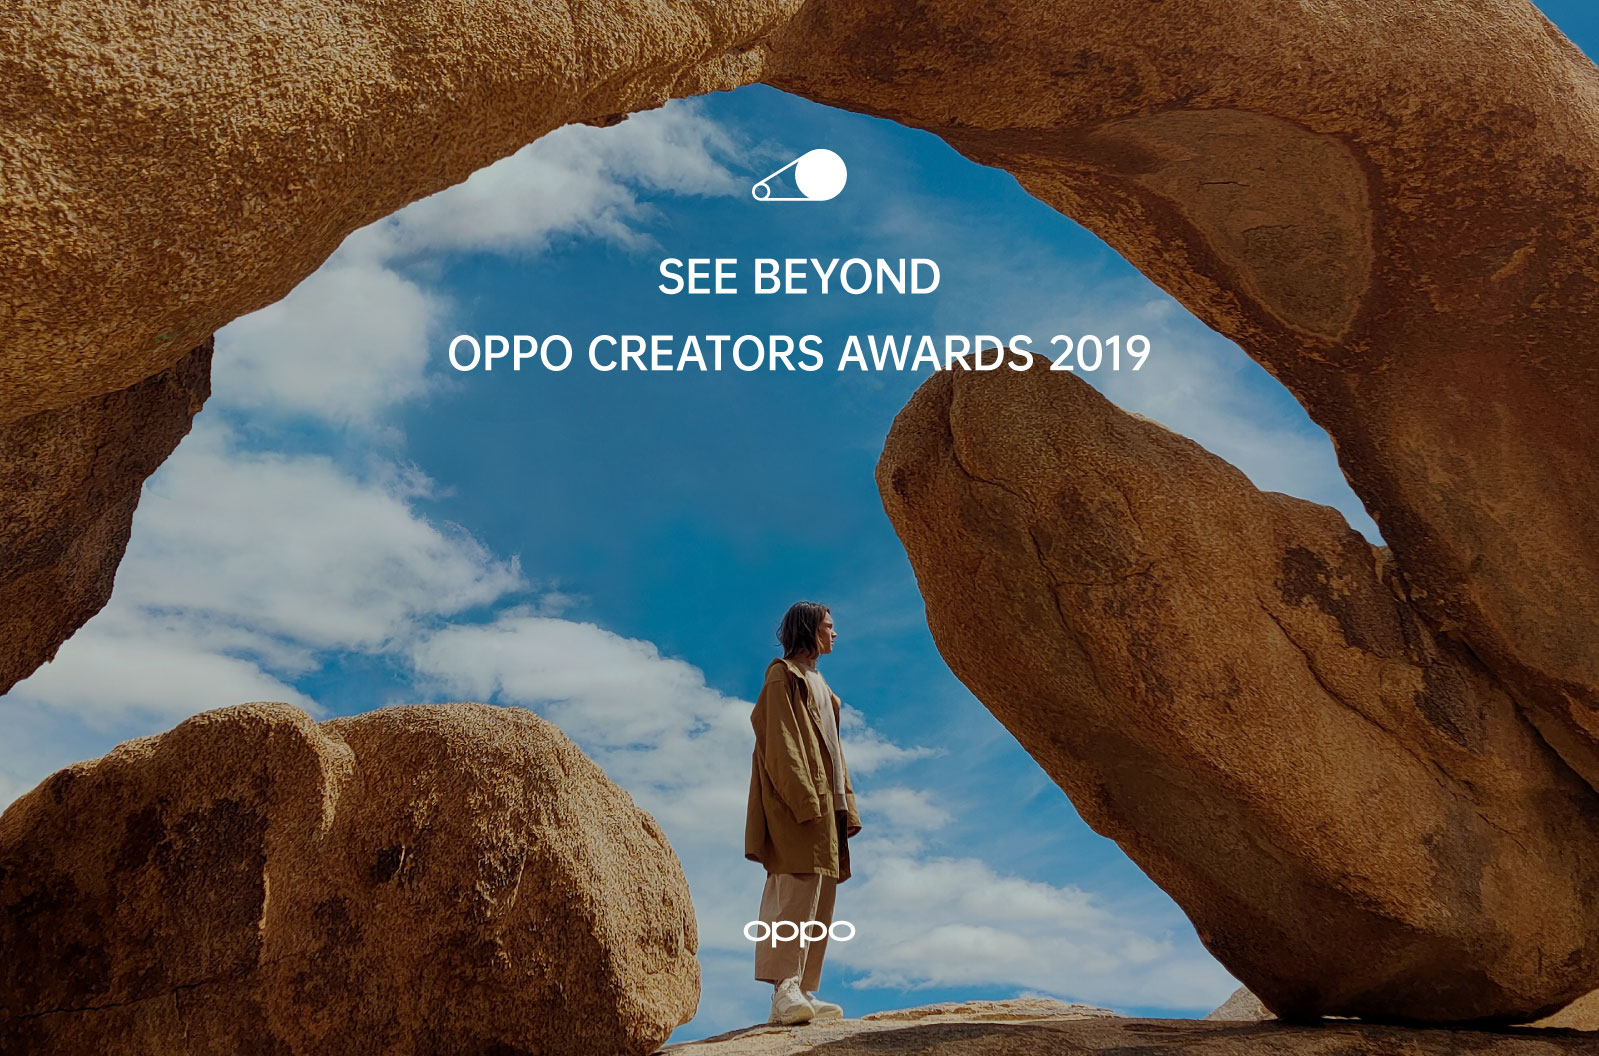 OPPO Creators Awards 2019 Winners Announced